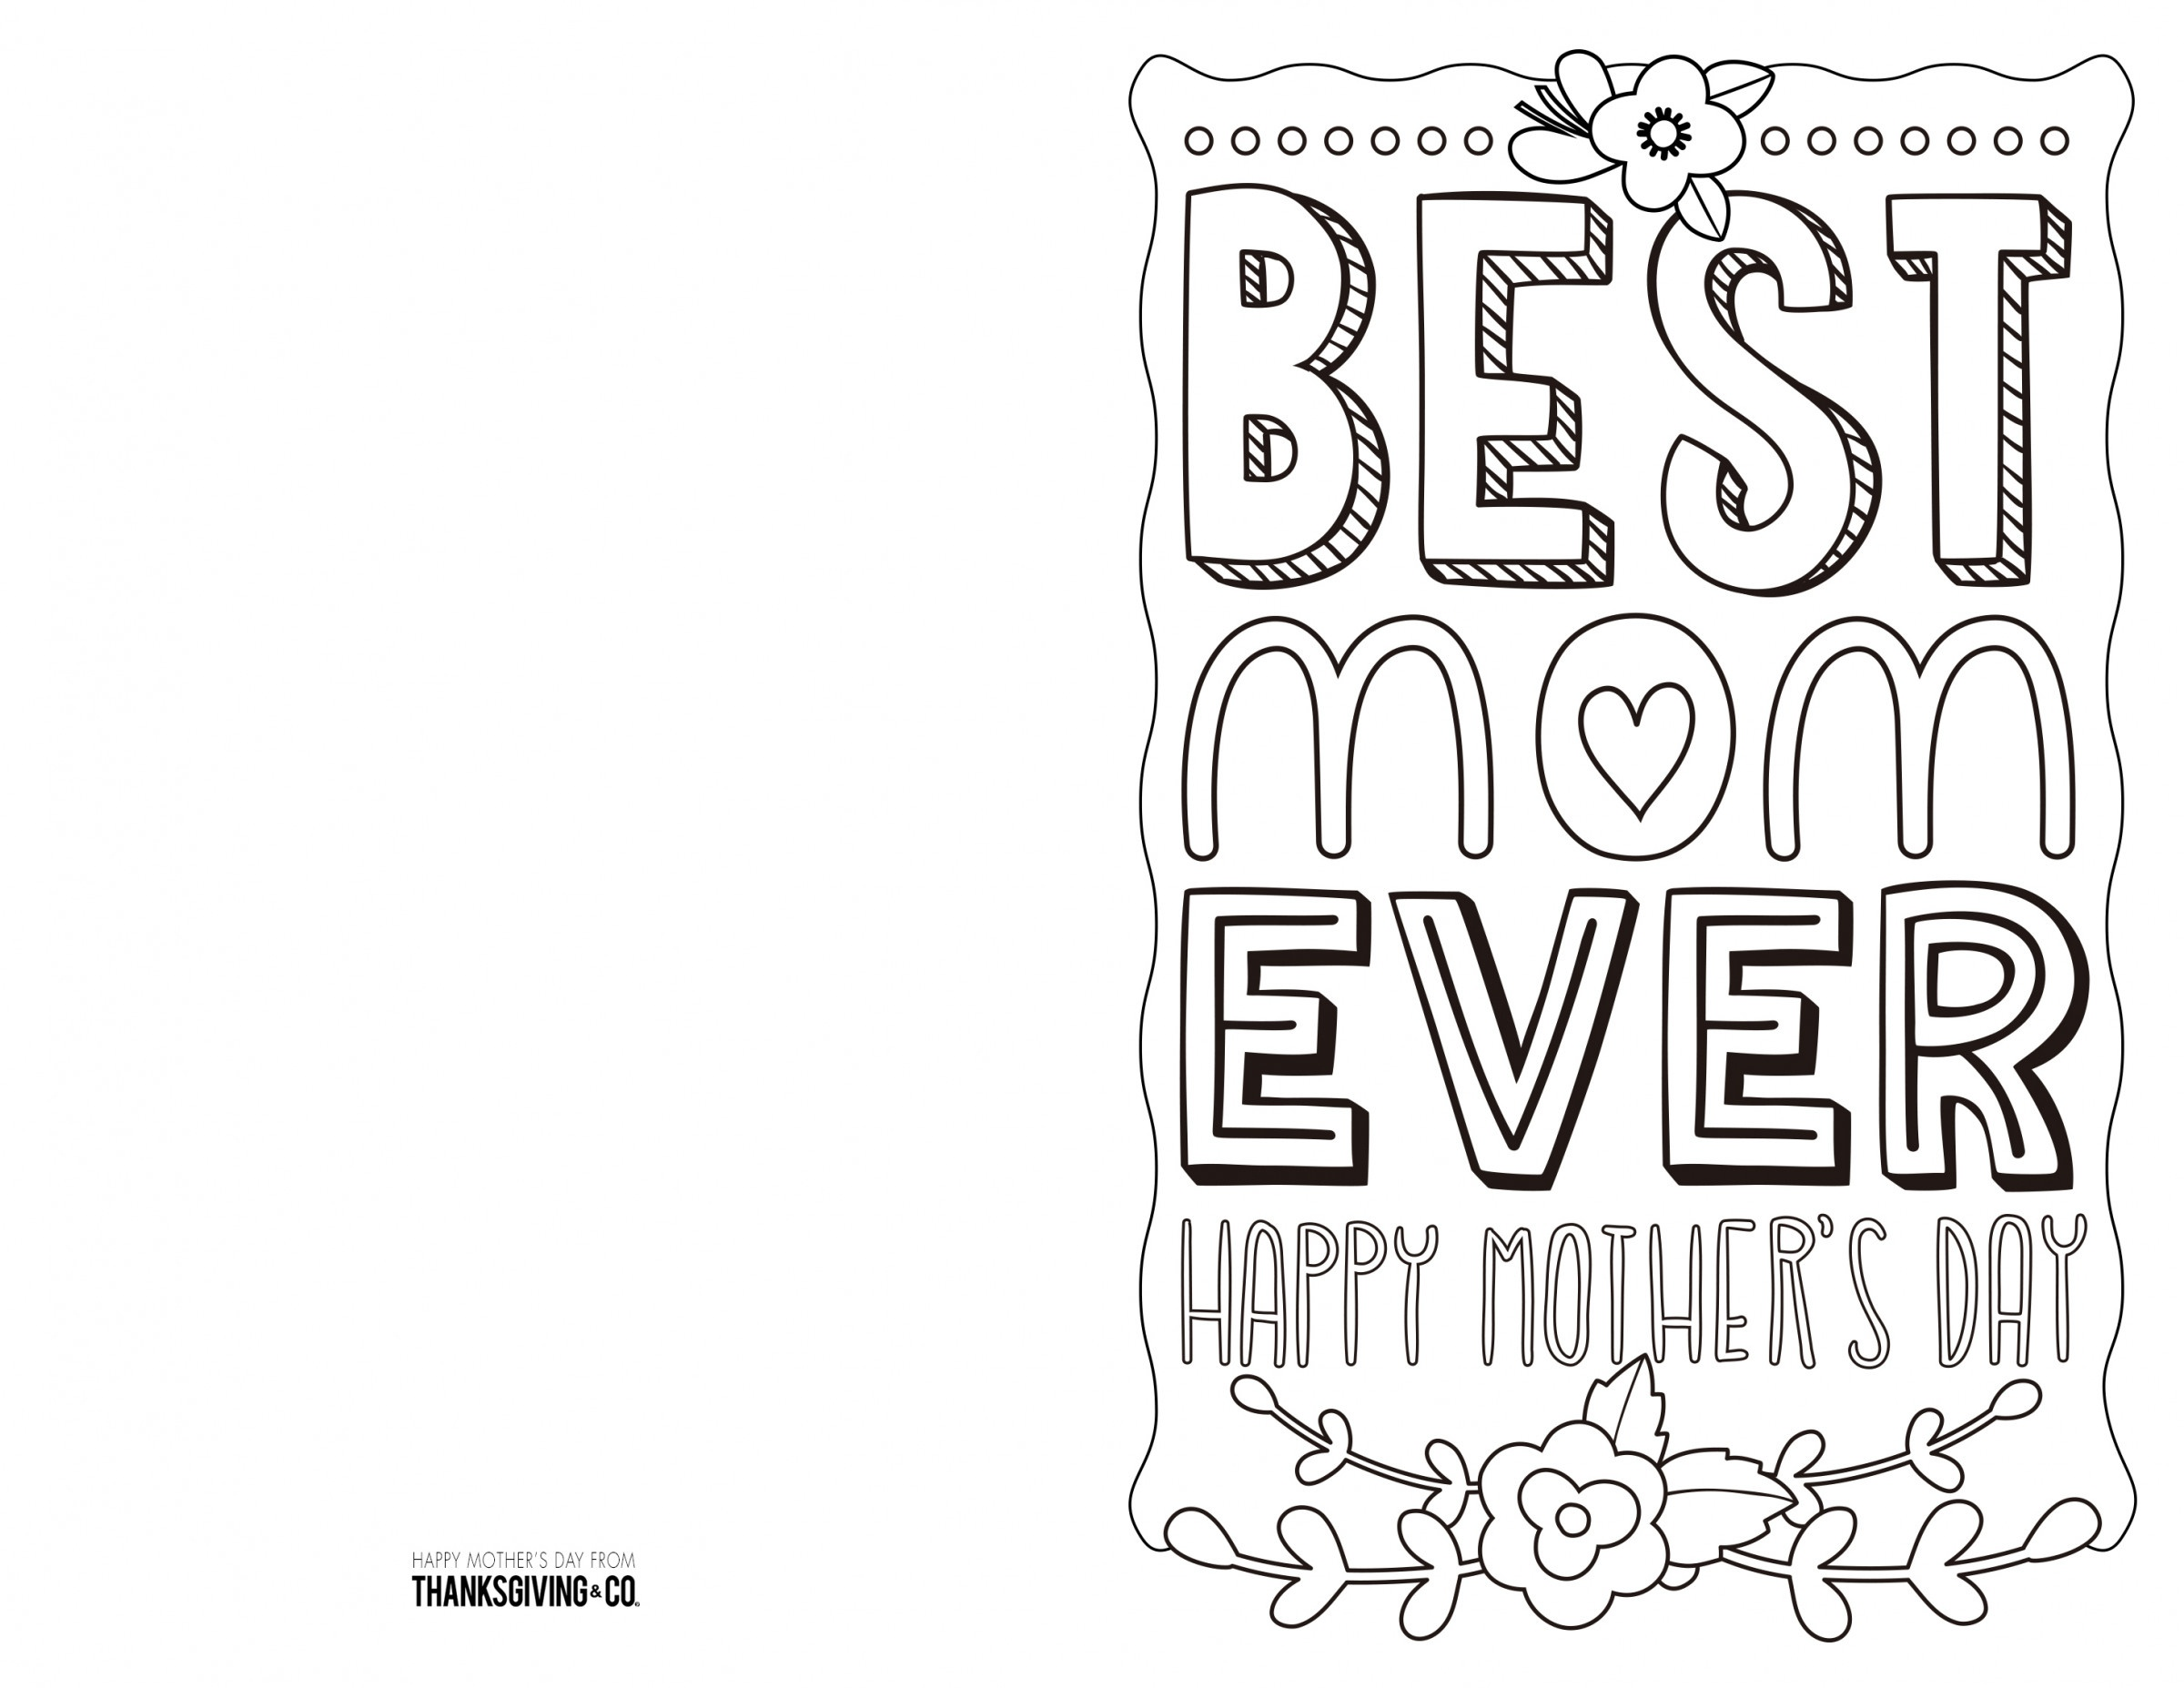 Coloring ~ Coloring Mothers Day Card Free Printable Cards To Color - Free Printable Cards To Color